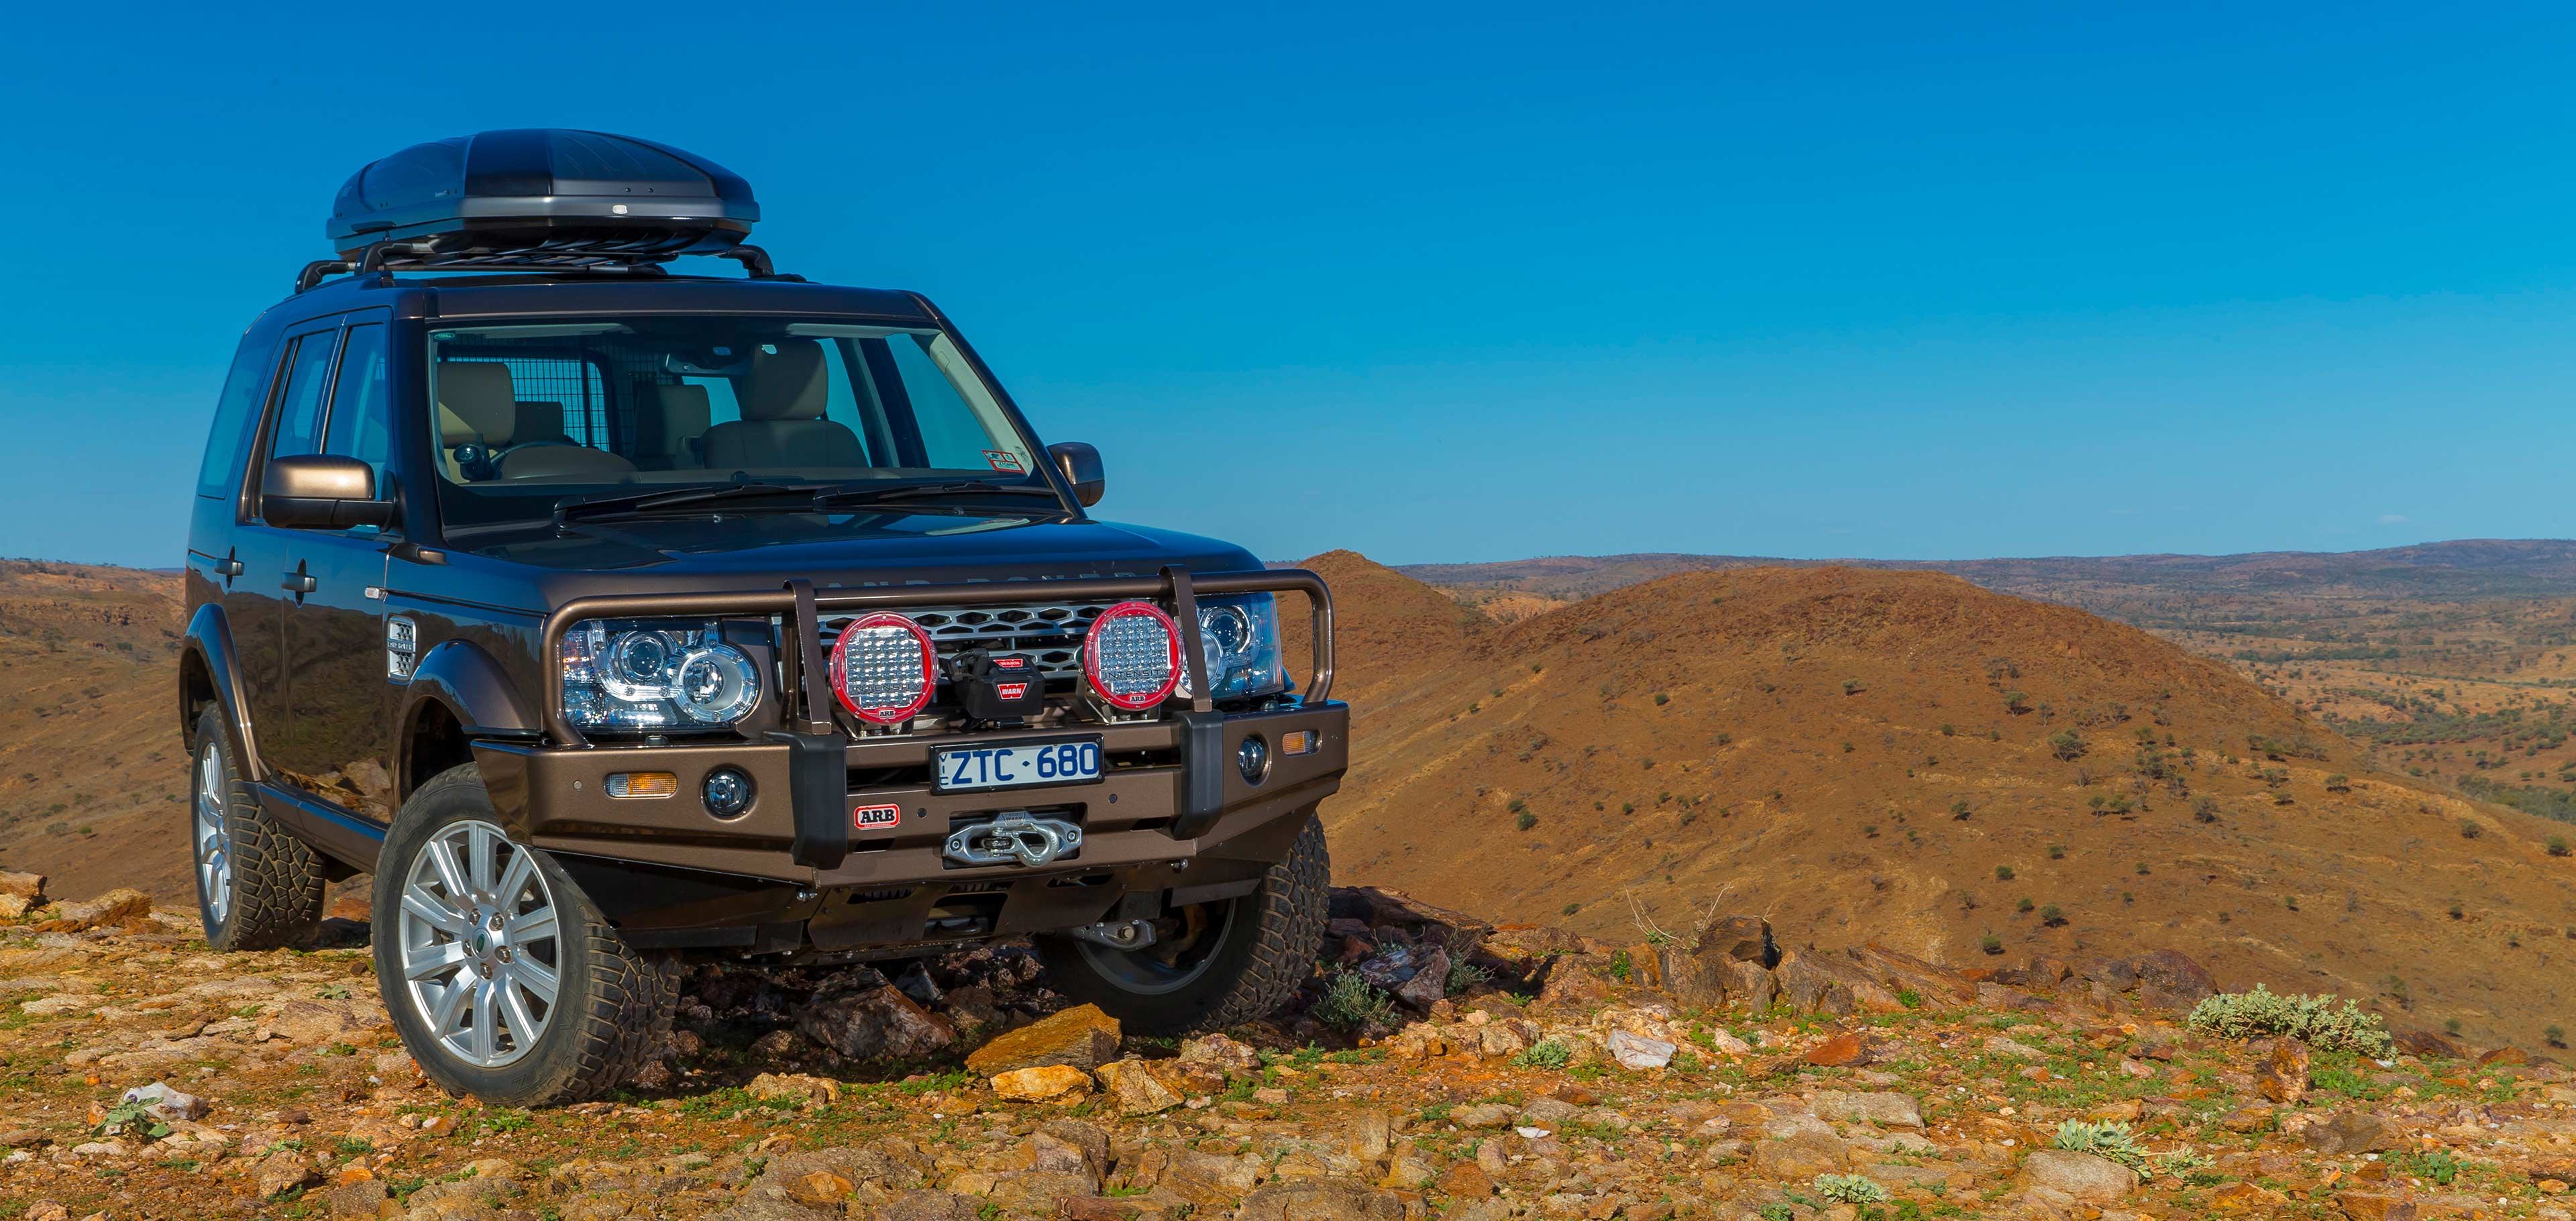 ARB 4×4 Accessories | Bull Bars - ARB 4x4 Accessories